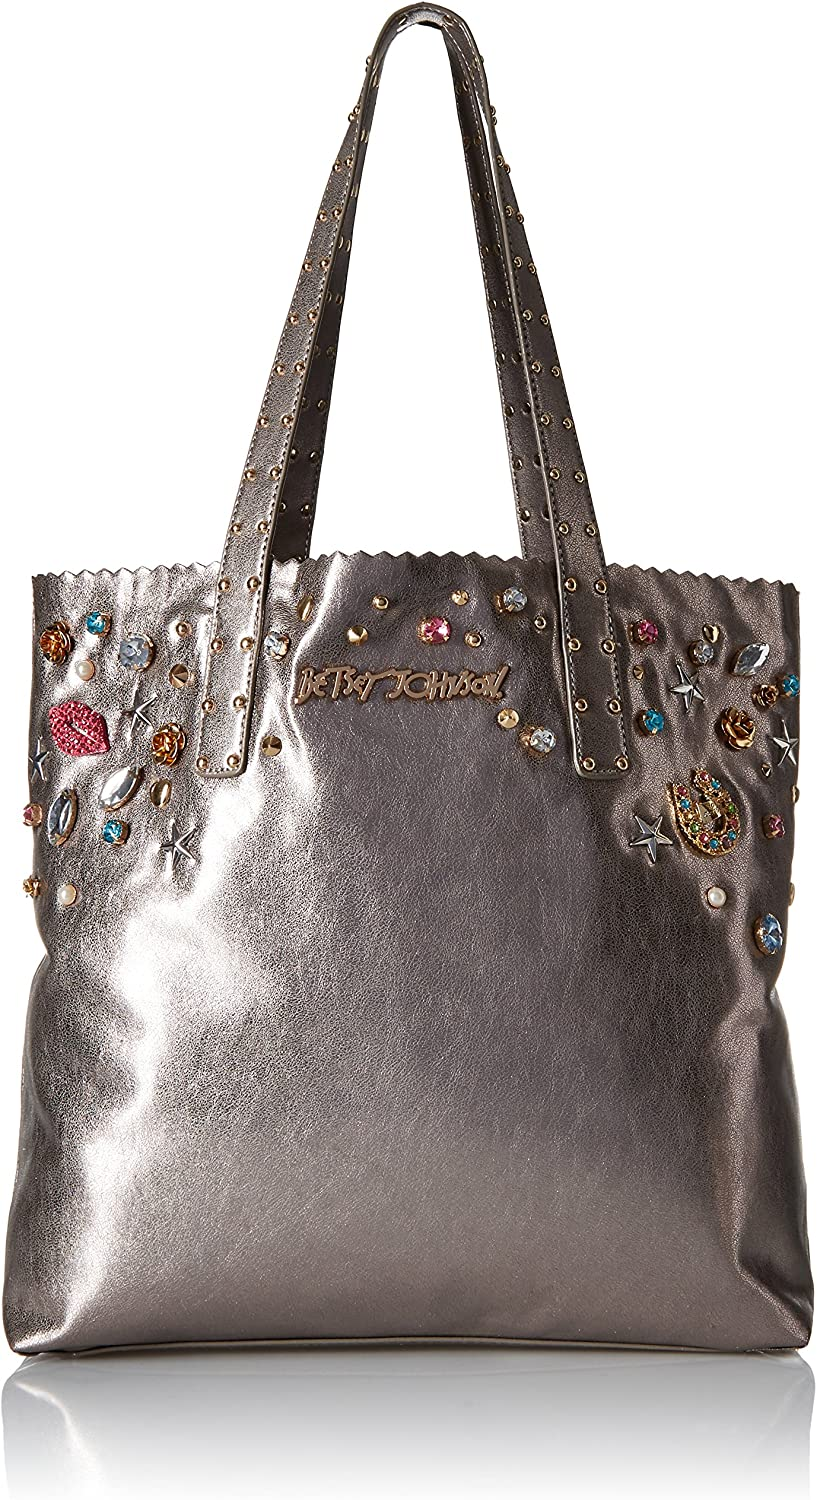 Betsey Johnson Bj70905f